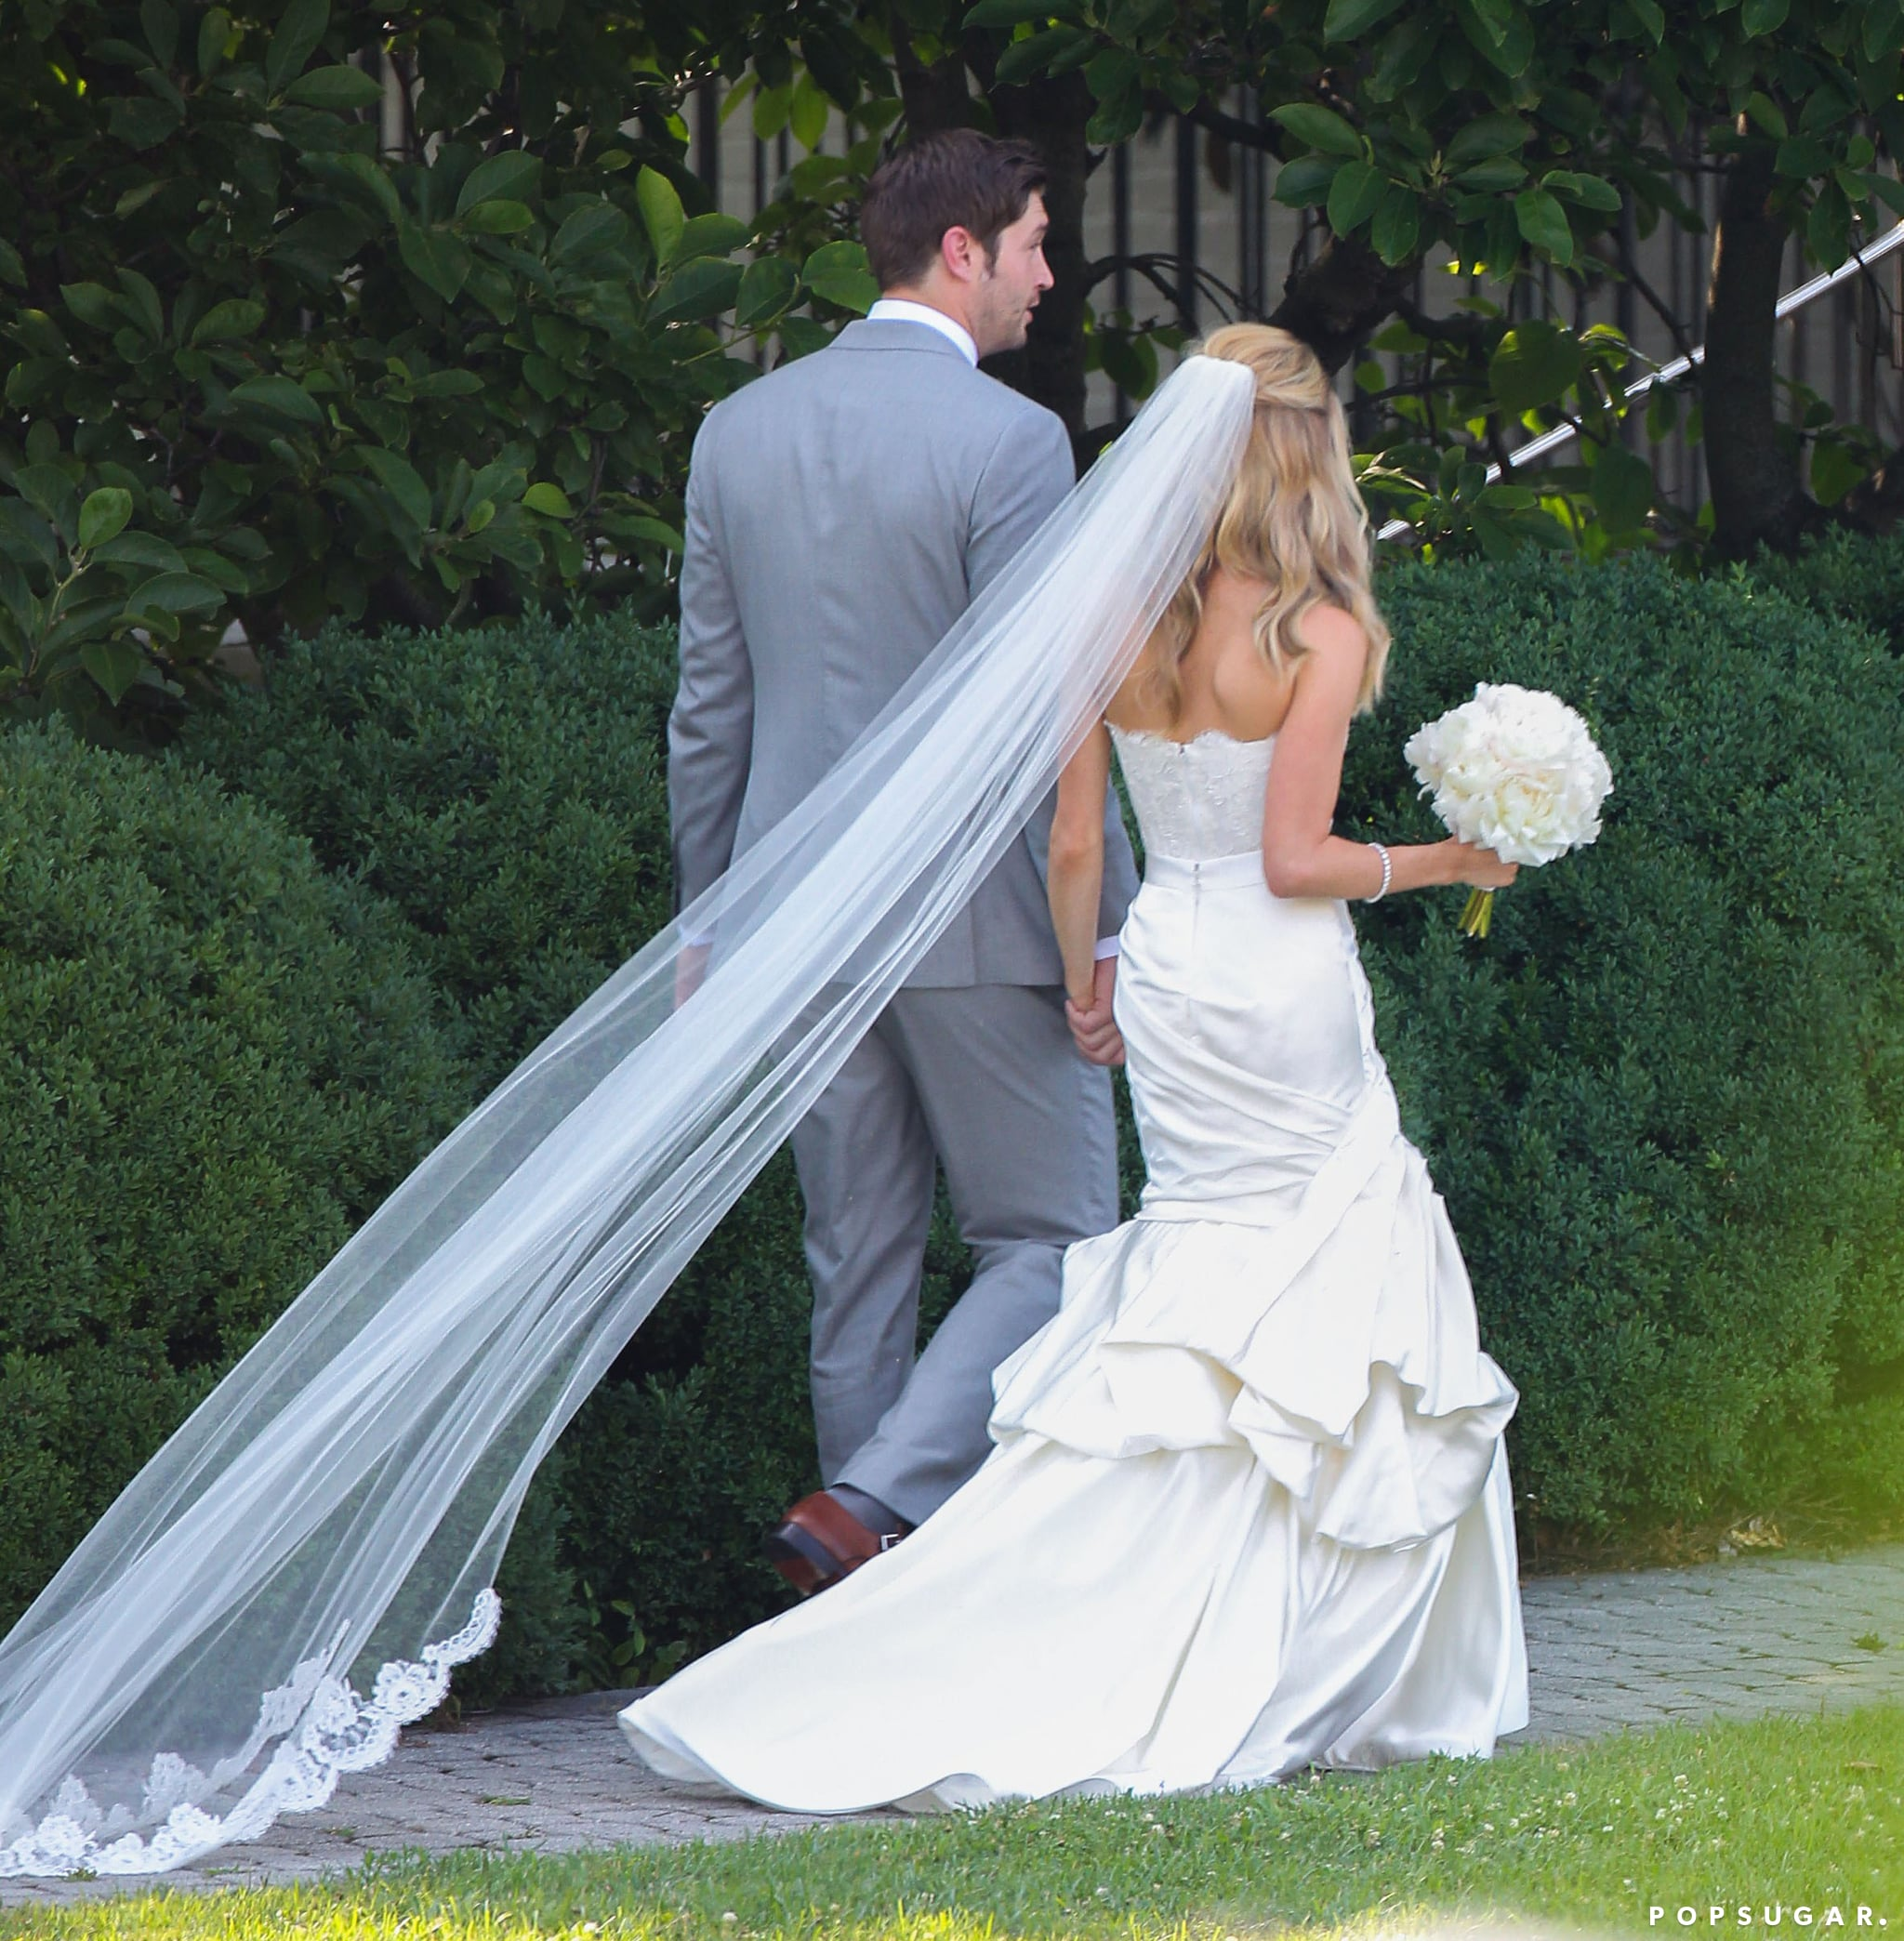 What an amazing shot! We're loving Kristin's strapless gown.